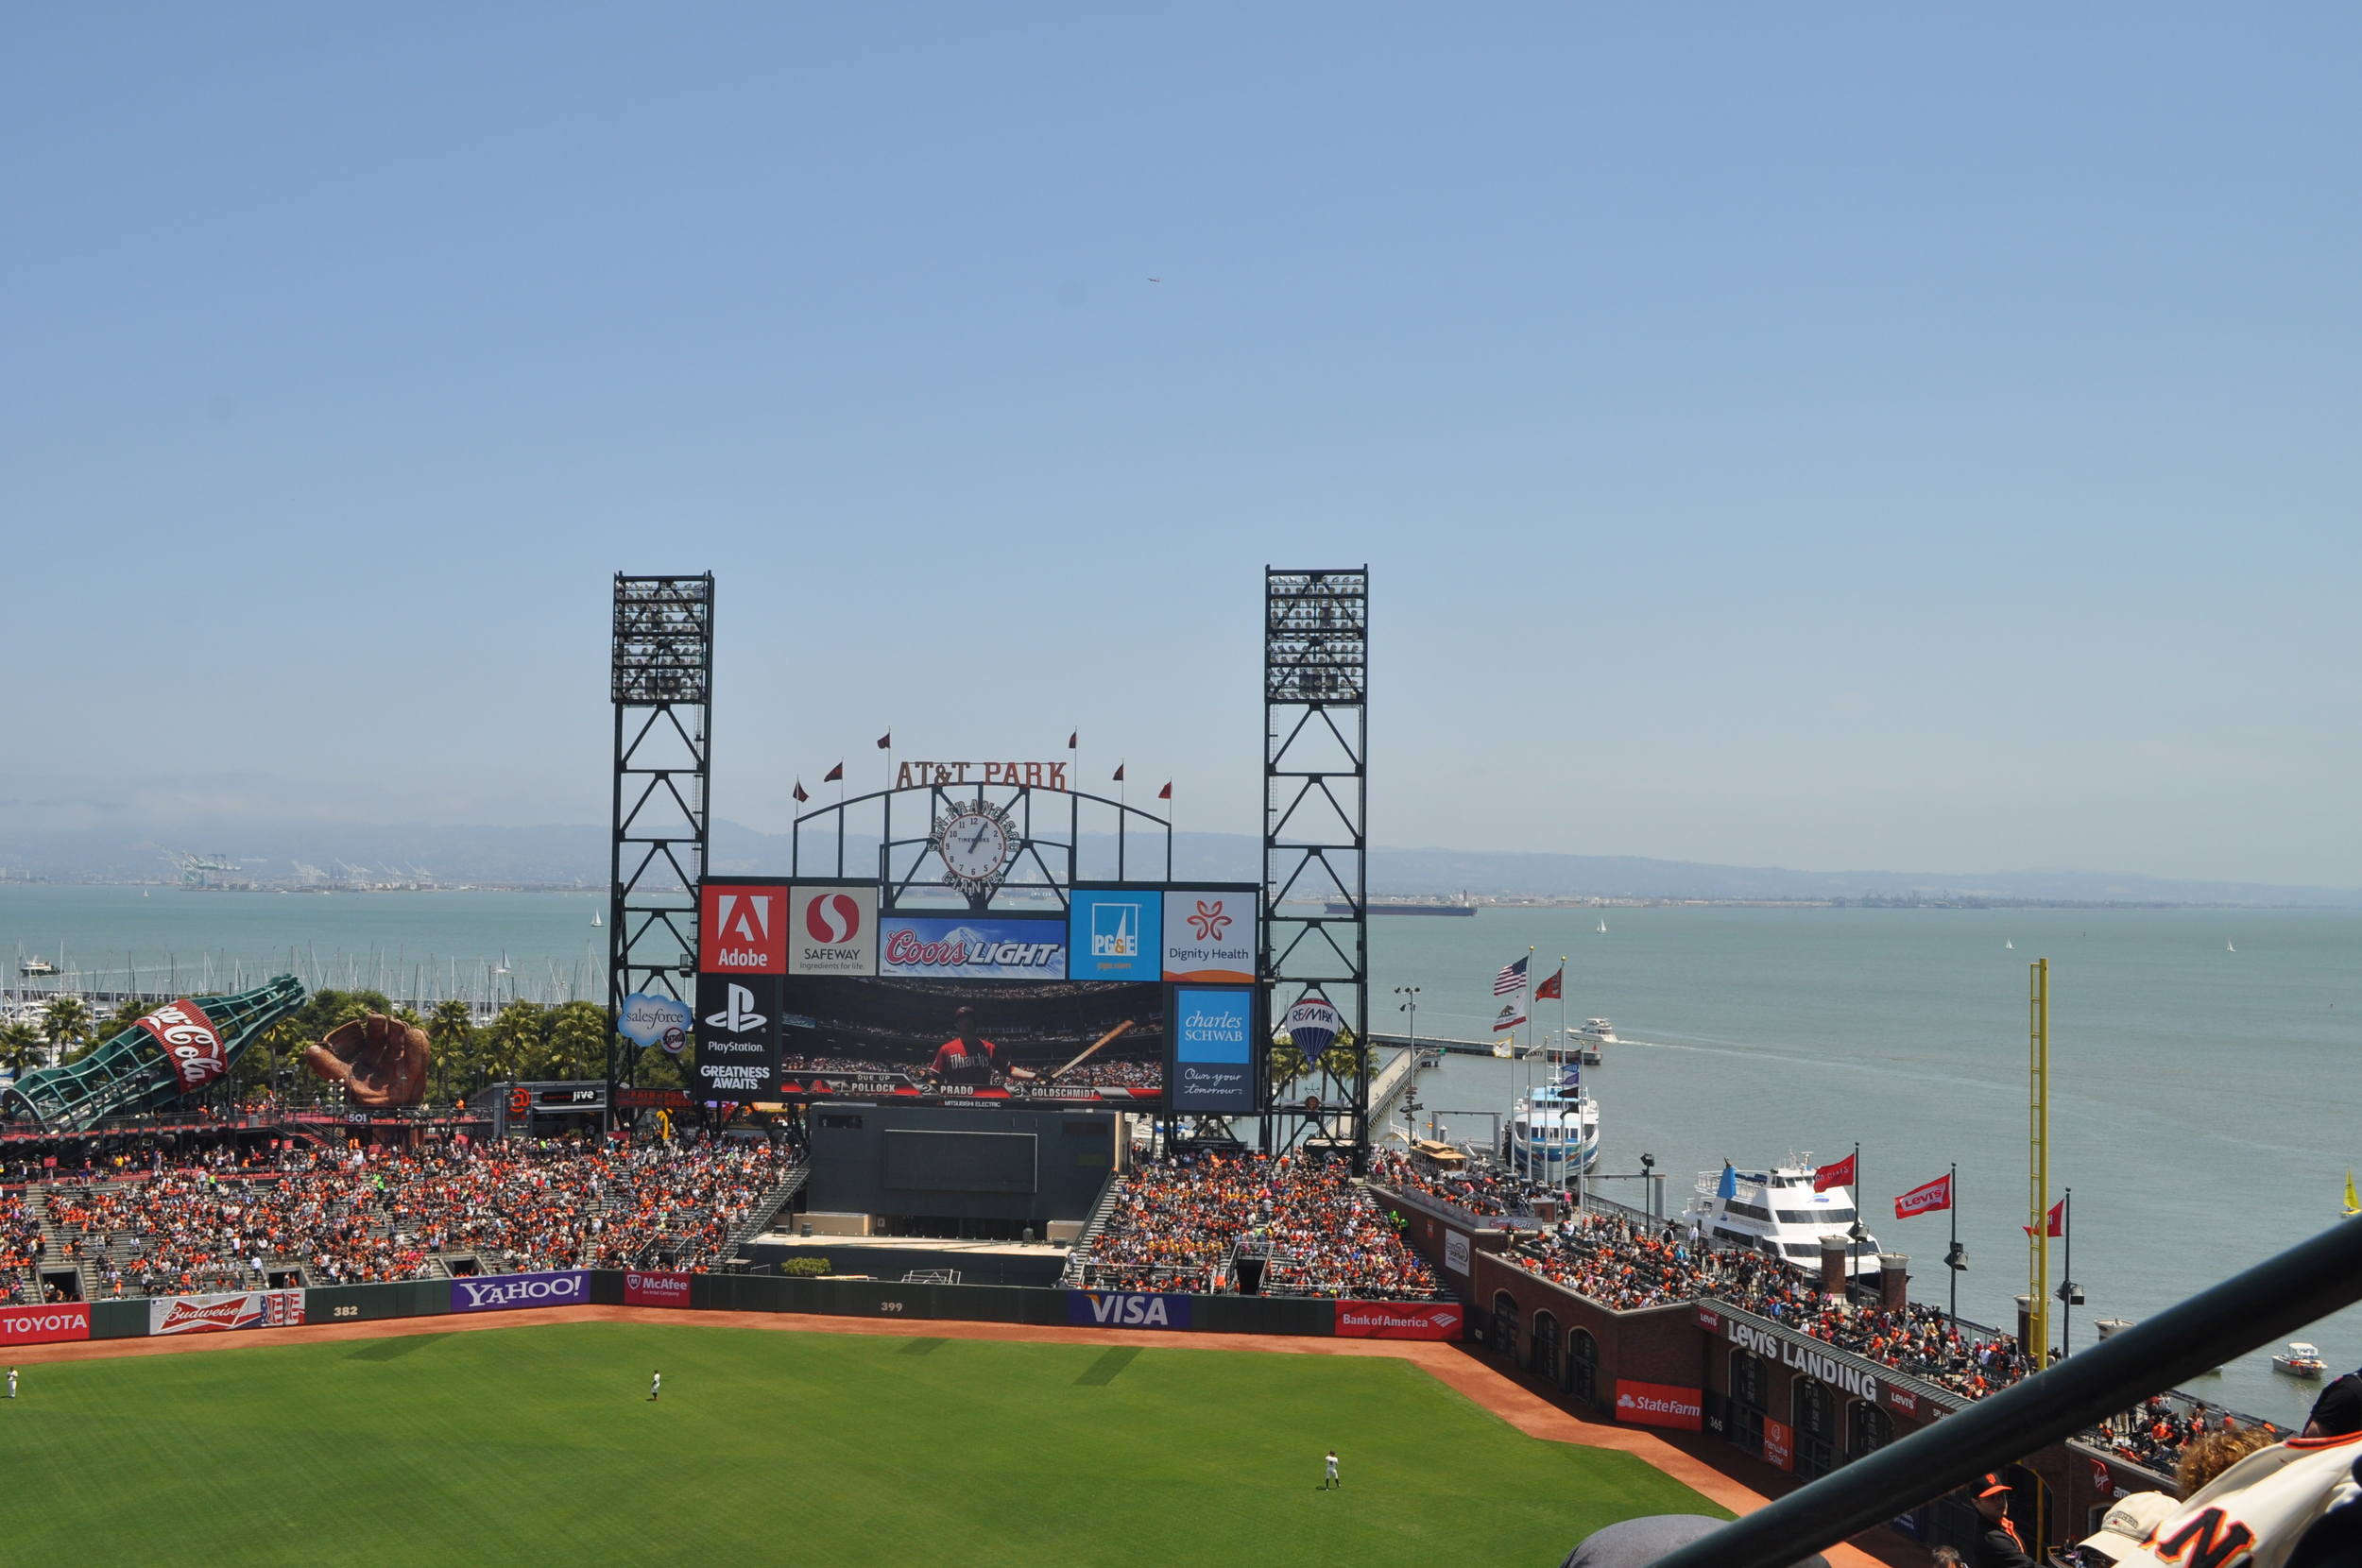 Our stay at the bay brought us to one of my uncles. We were able to meet up to catch a Giants game. We had such a great time catching up. The Giants didn't win, but we were able to eat some very tasty stadium food.....garlic fries are a must!!!!